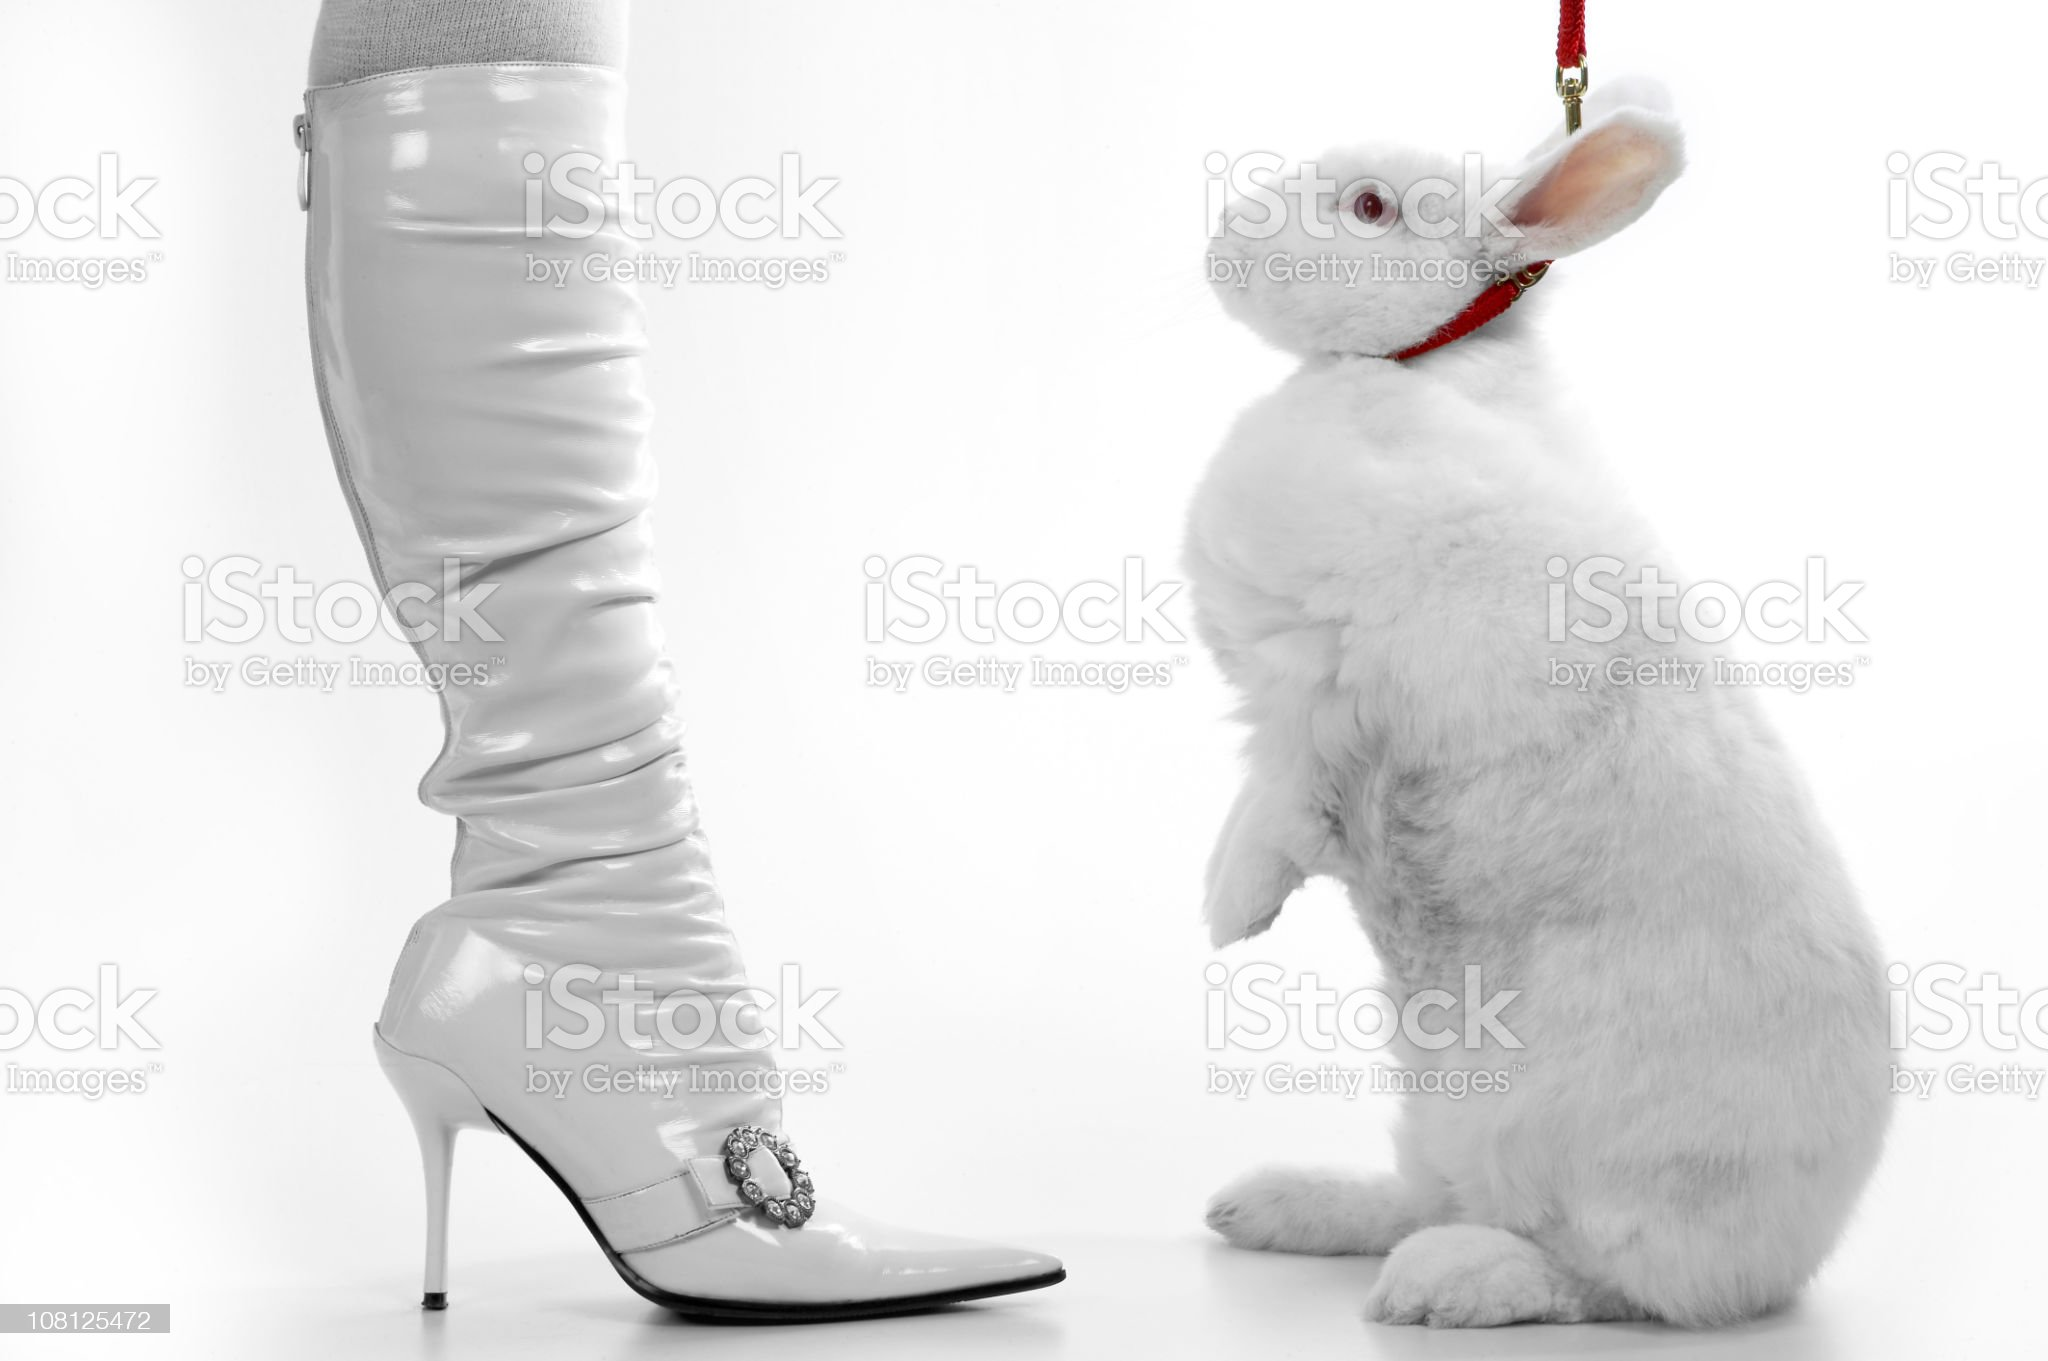 White Rabbit Standing with Woman in Boots royalty-free stock photo